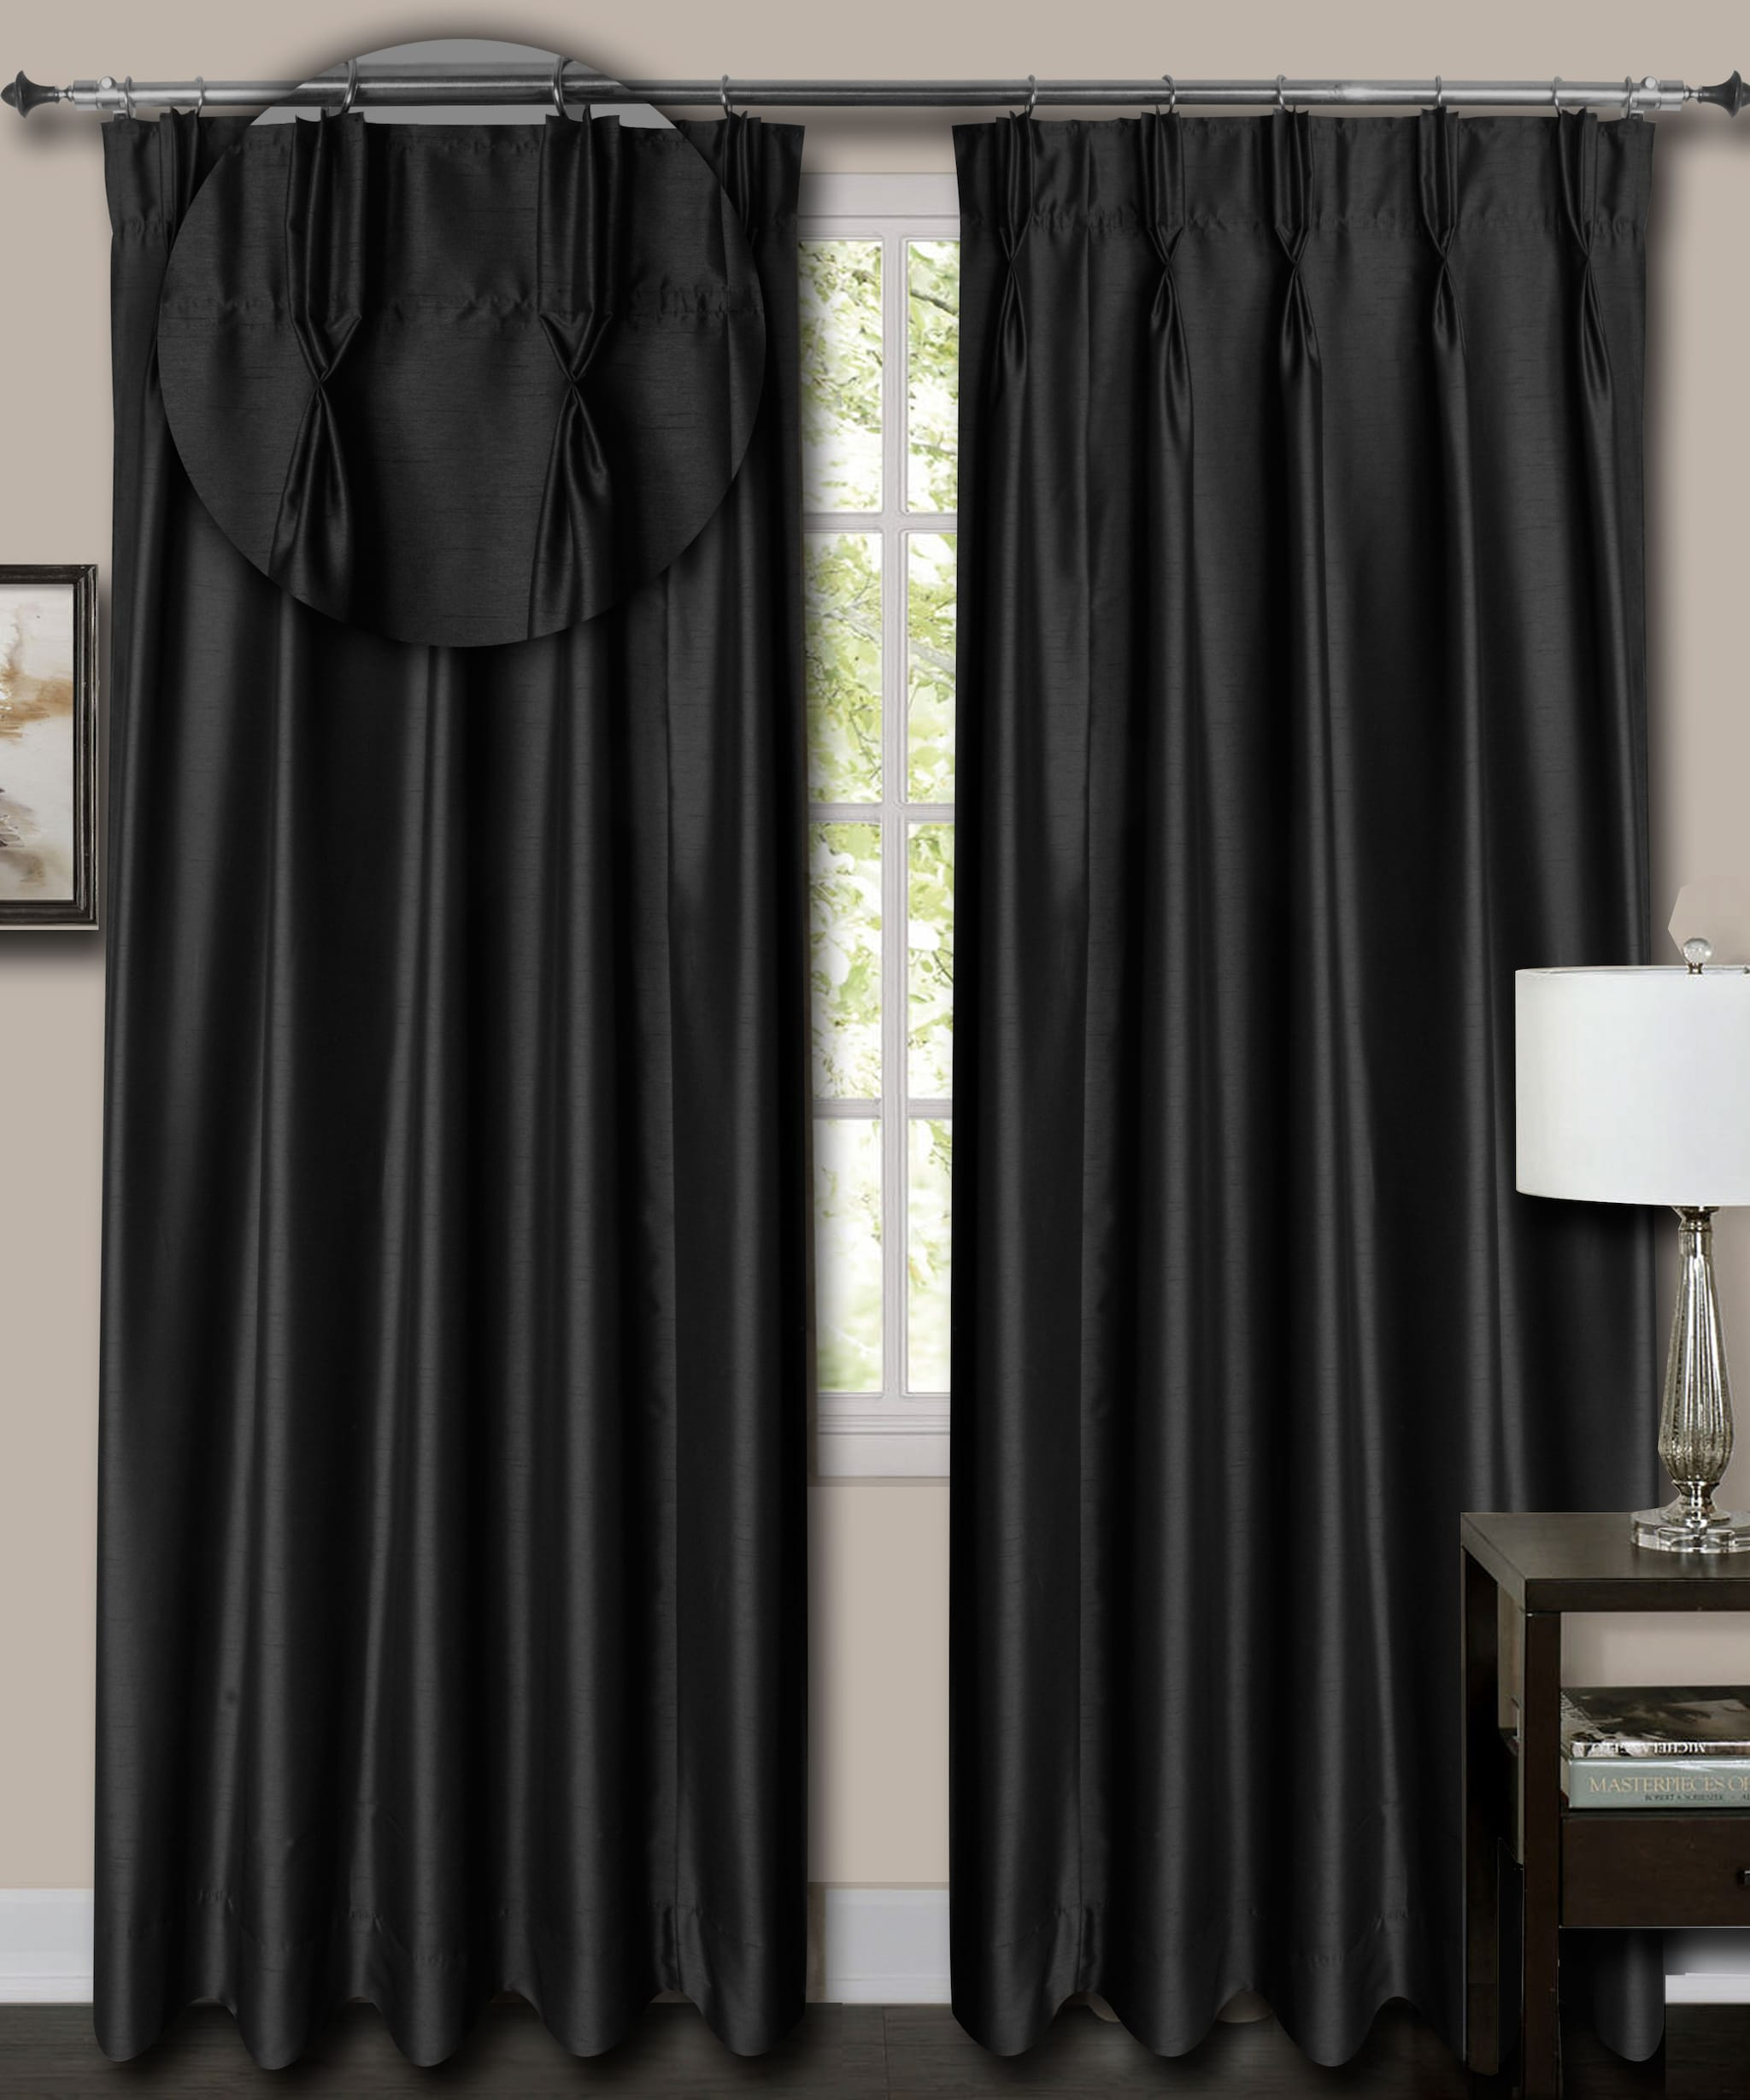 "French Pleat Top Black Faux Silk Dupioni Curtains. (24"" Wide,8 Feet Long,Without Lining)"